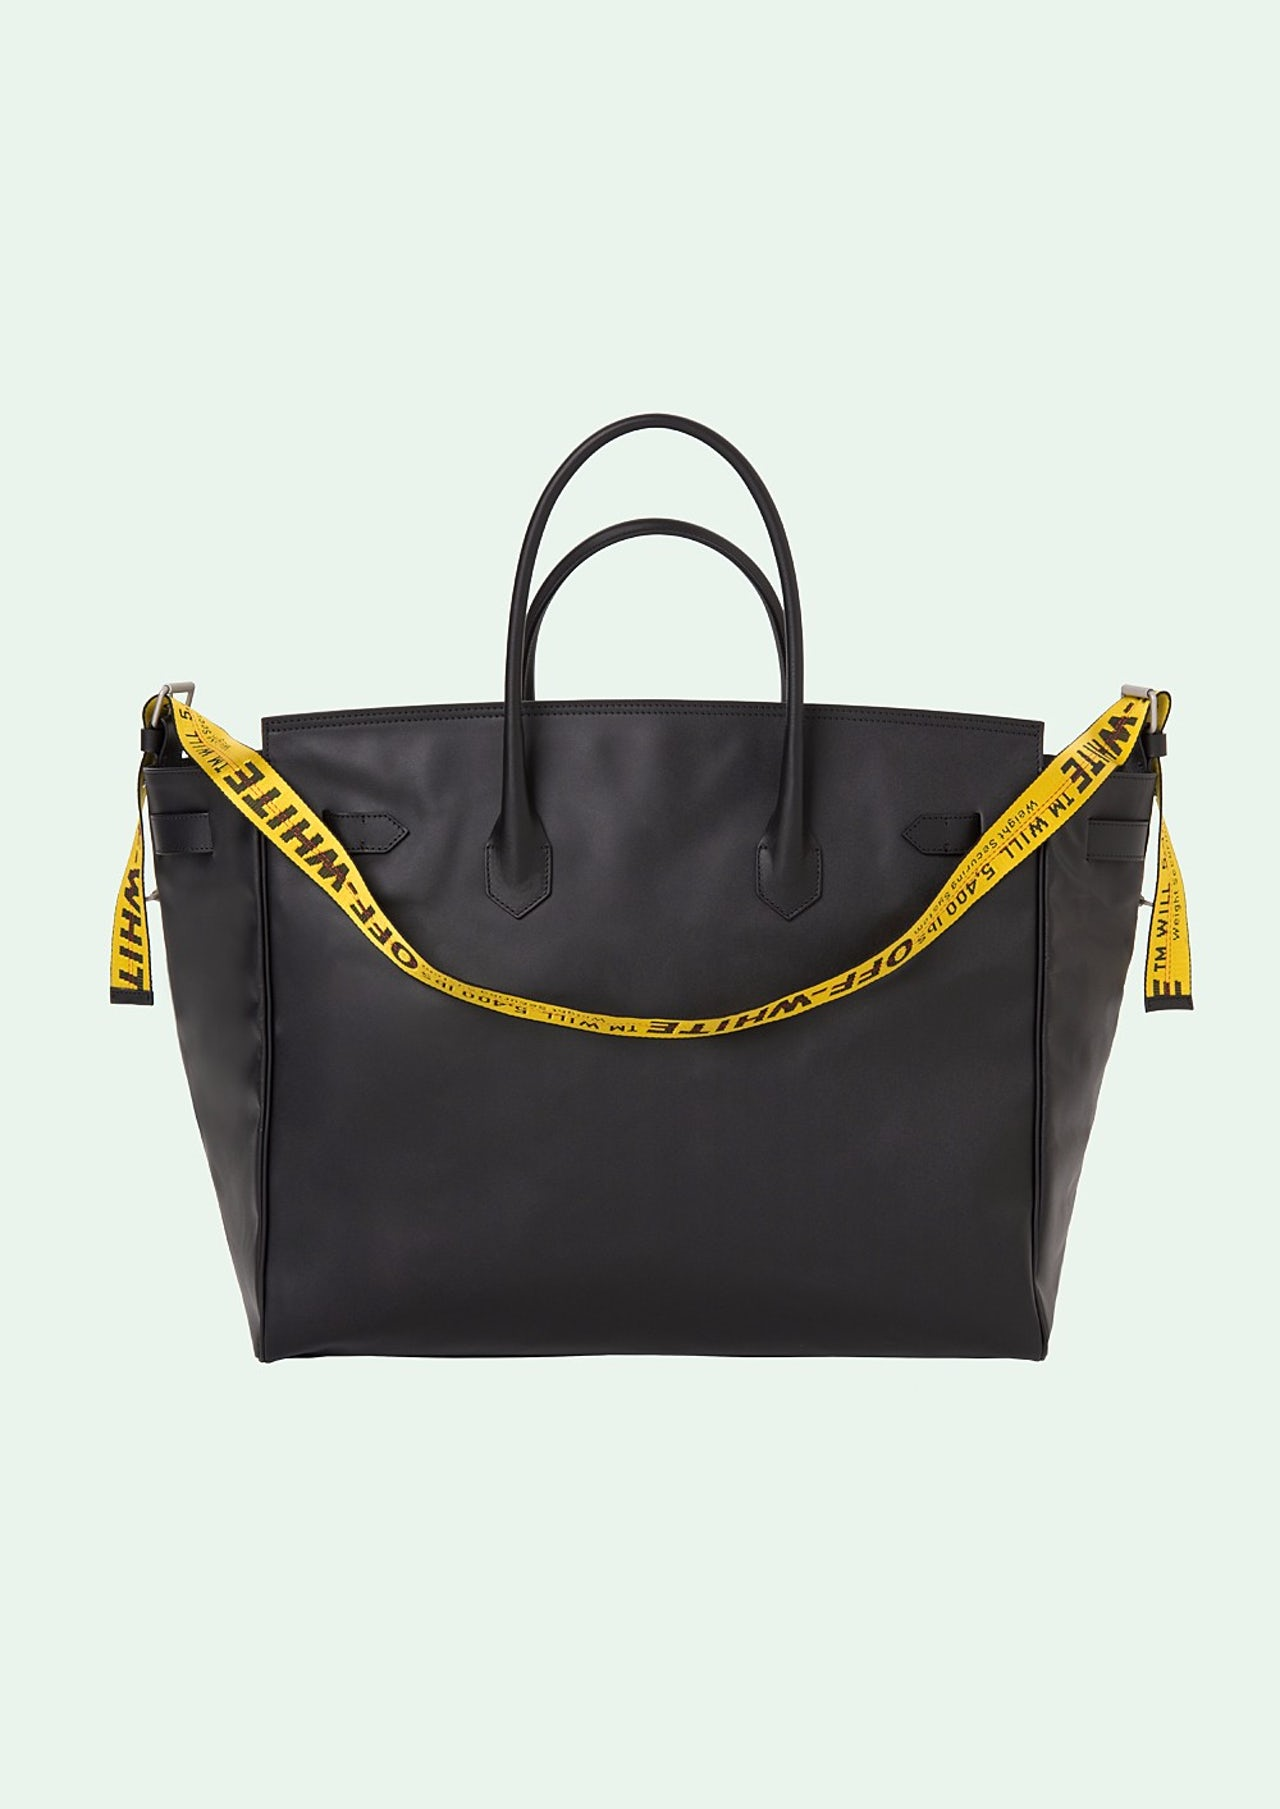 The leather Maxi bag from the brand Off-White